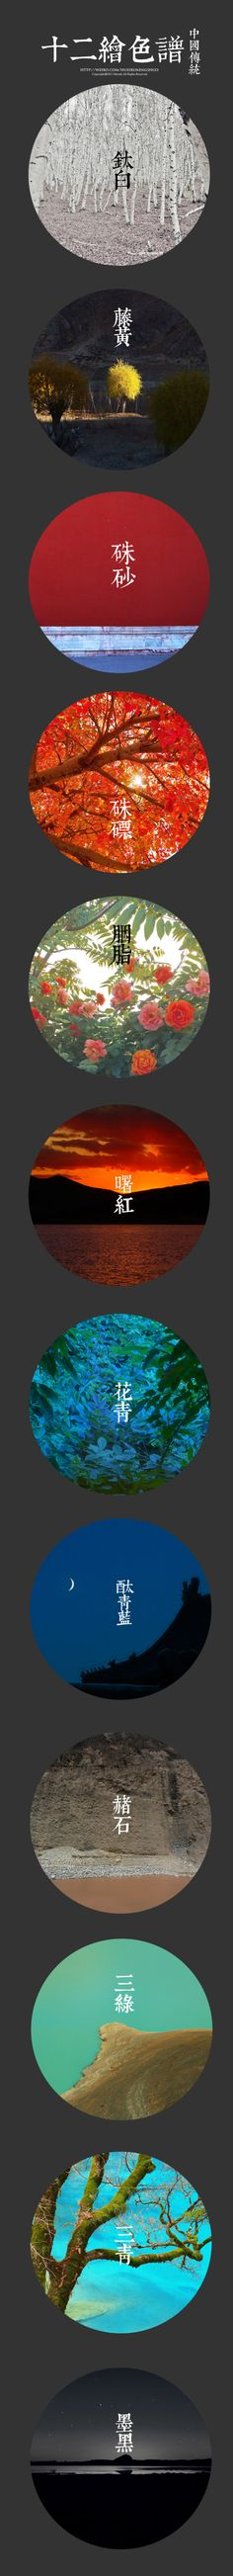 The twelve commonly used colour palette in traditional Chinese Art. I believe if you buy a box of traditional Chinese painting pigments, these are the colours it come with. Chinese Design, Asian Design, Japanese Design, Chinese Style, Traditional Chinese, Web Design, Design Art, Chinese Element, Chinese Typography